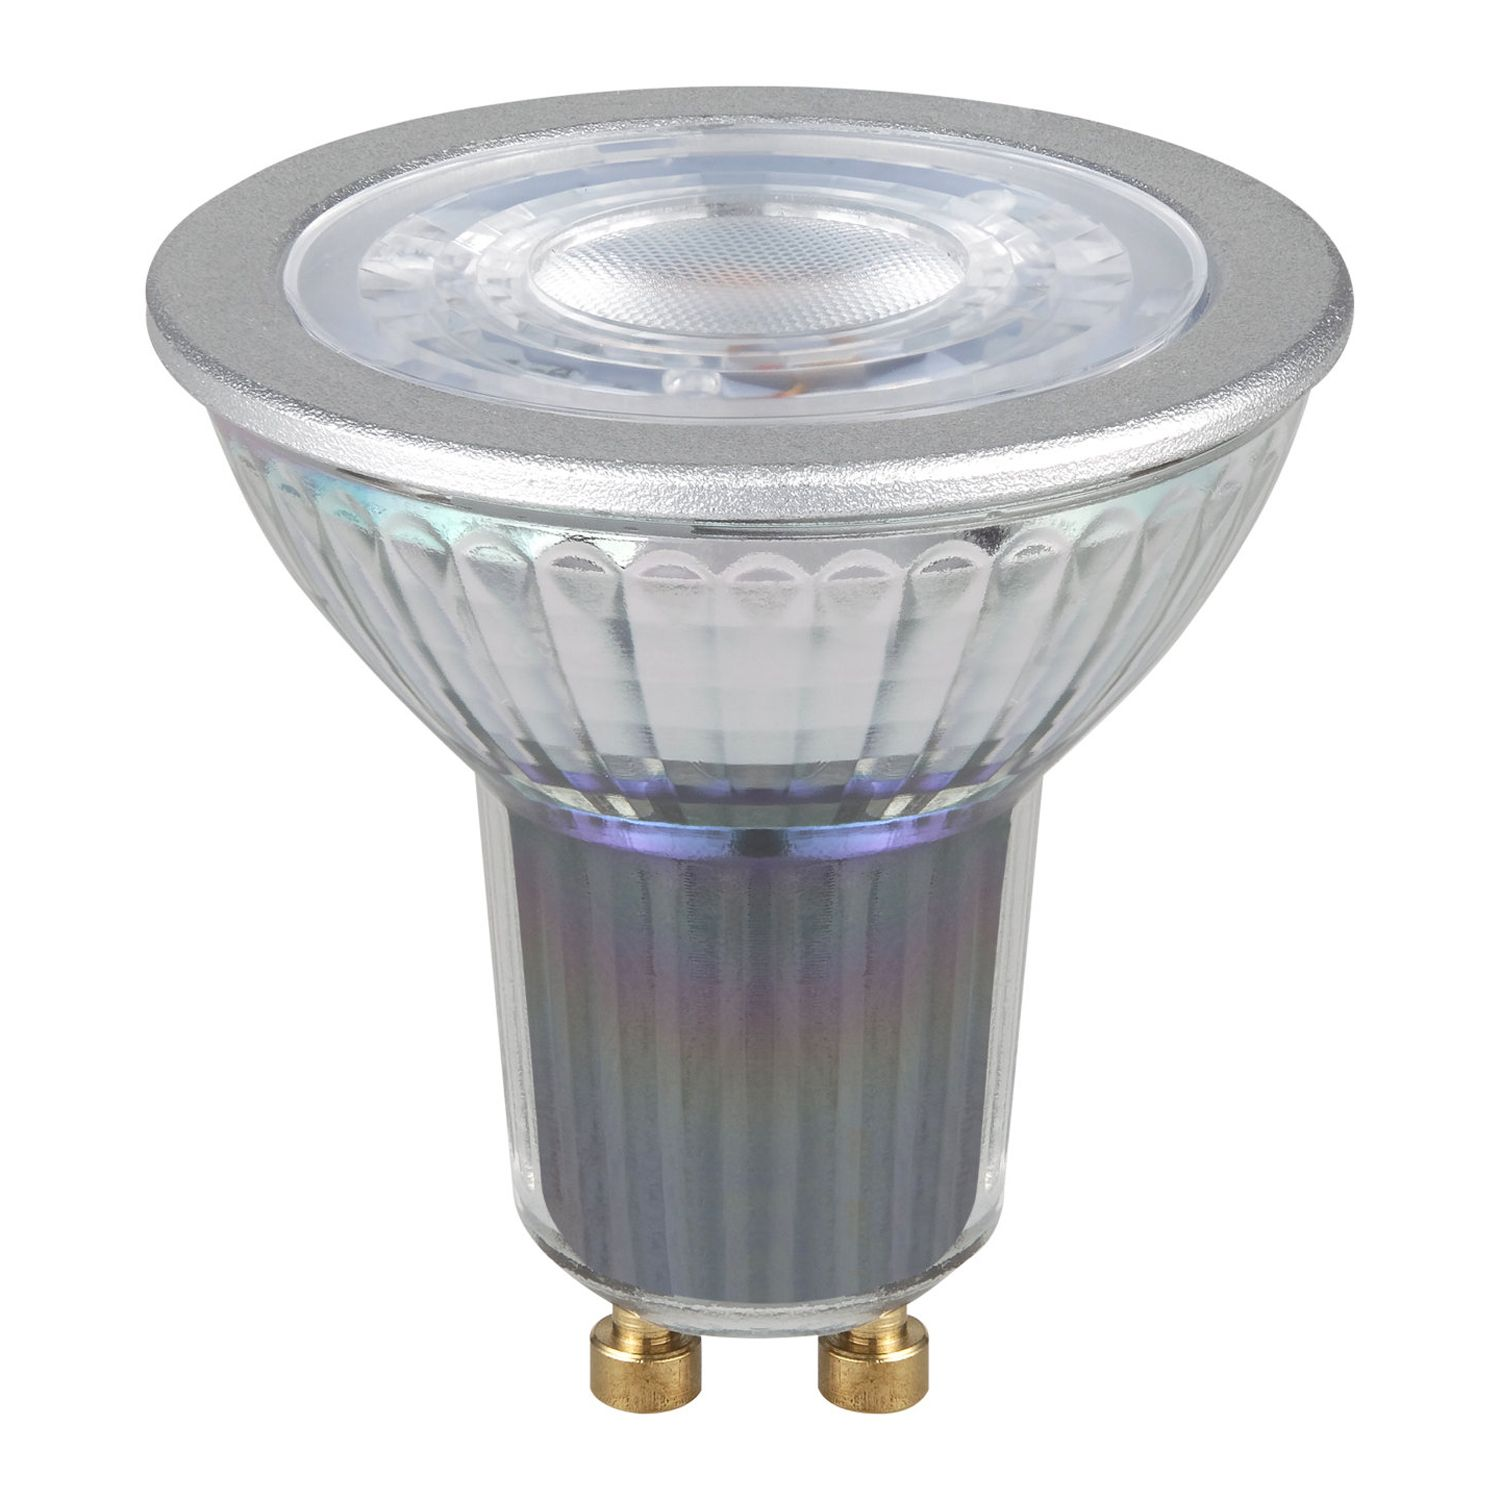 Osram Parathom Retrofit GU10 PAR16 9.6W 827 36D 750lm | Dimmable - Replacer for 100W